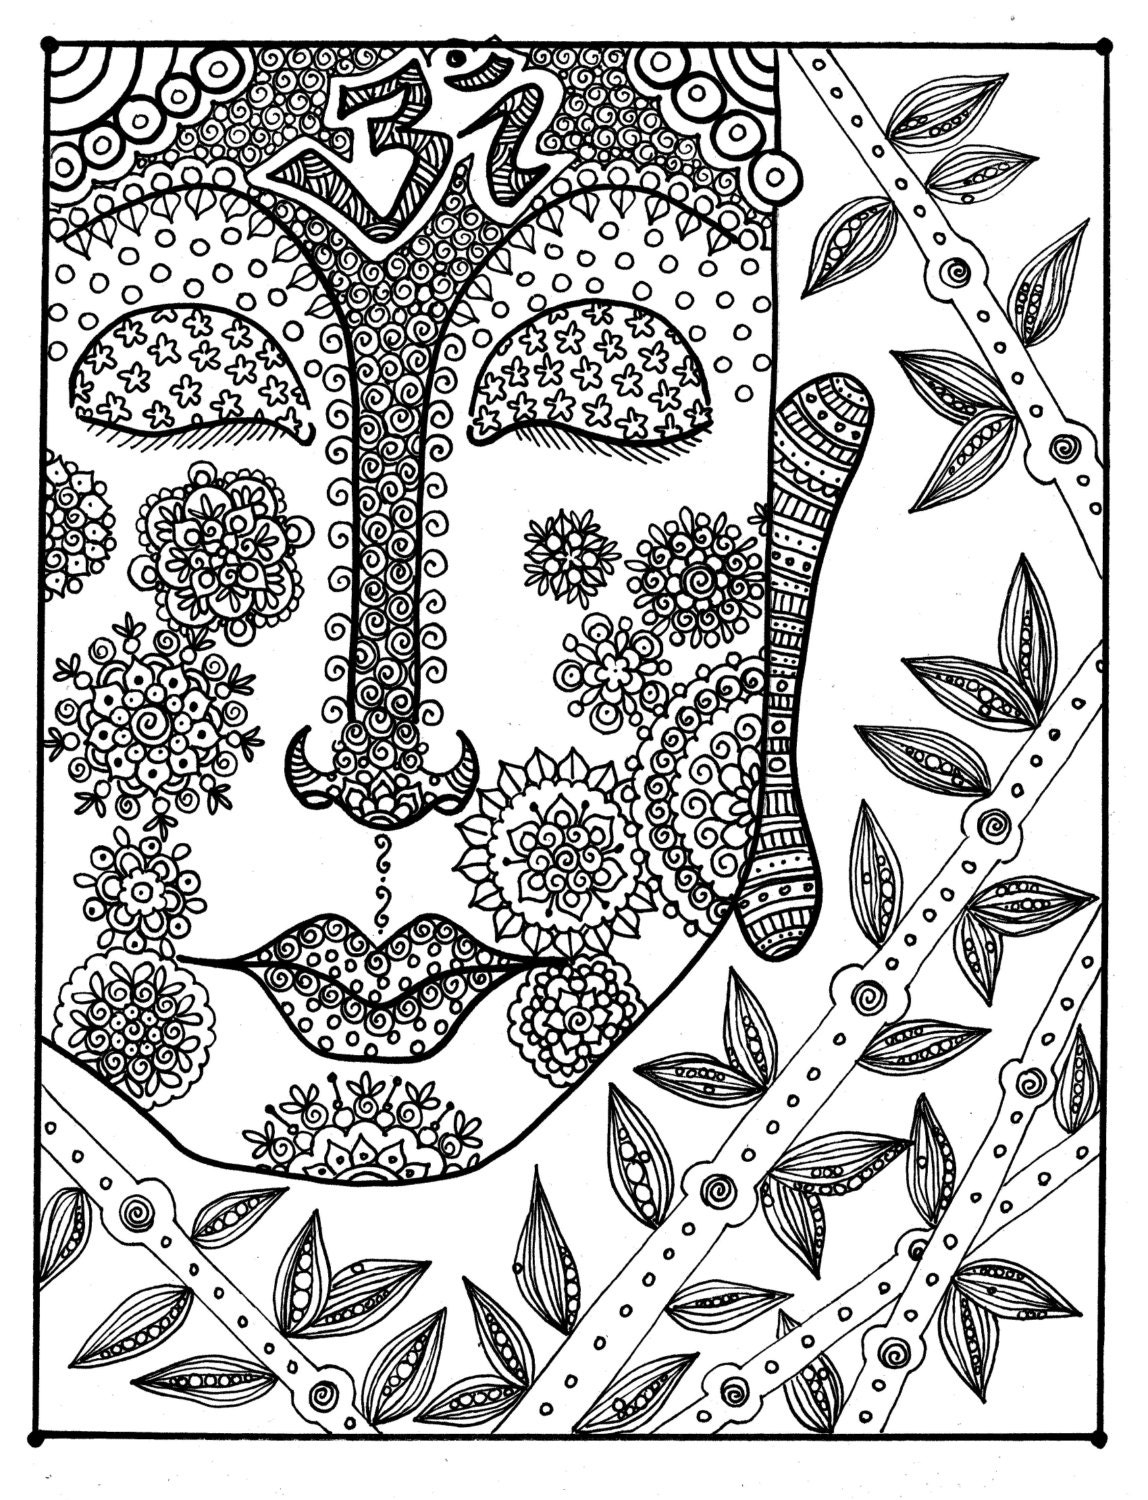 Zen out Coloring this Buddha coloring page will bring you